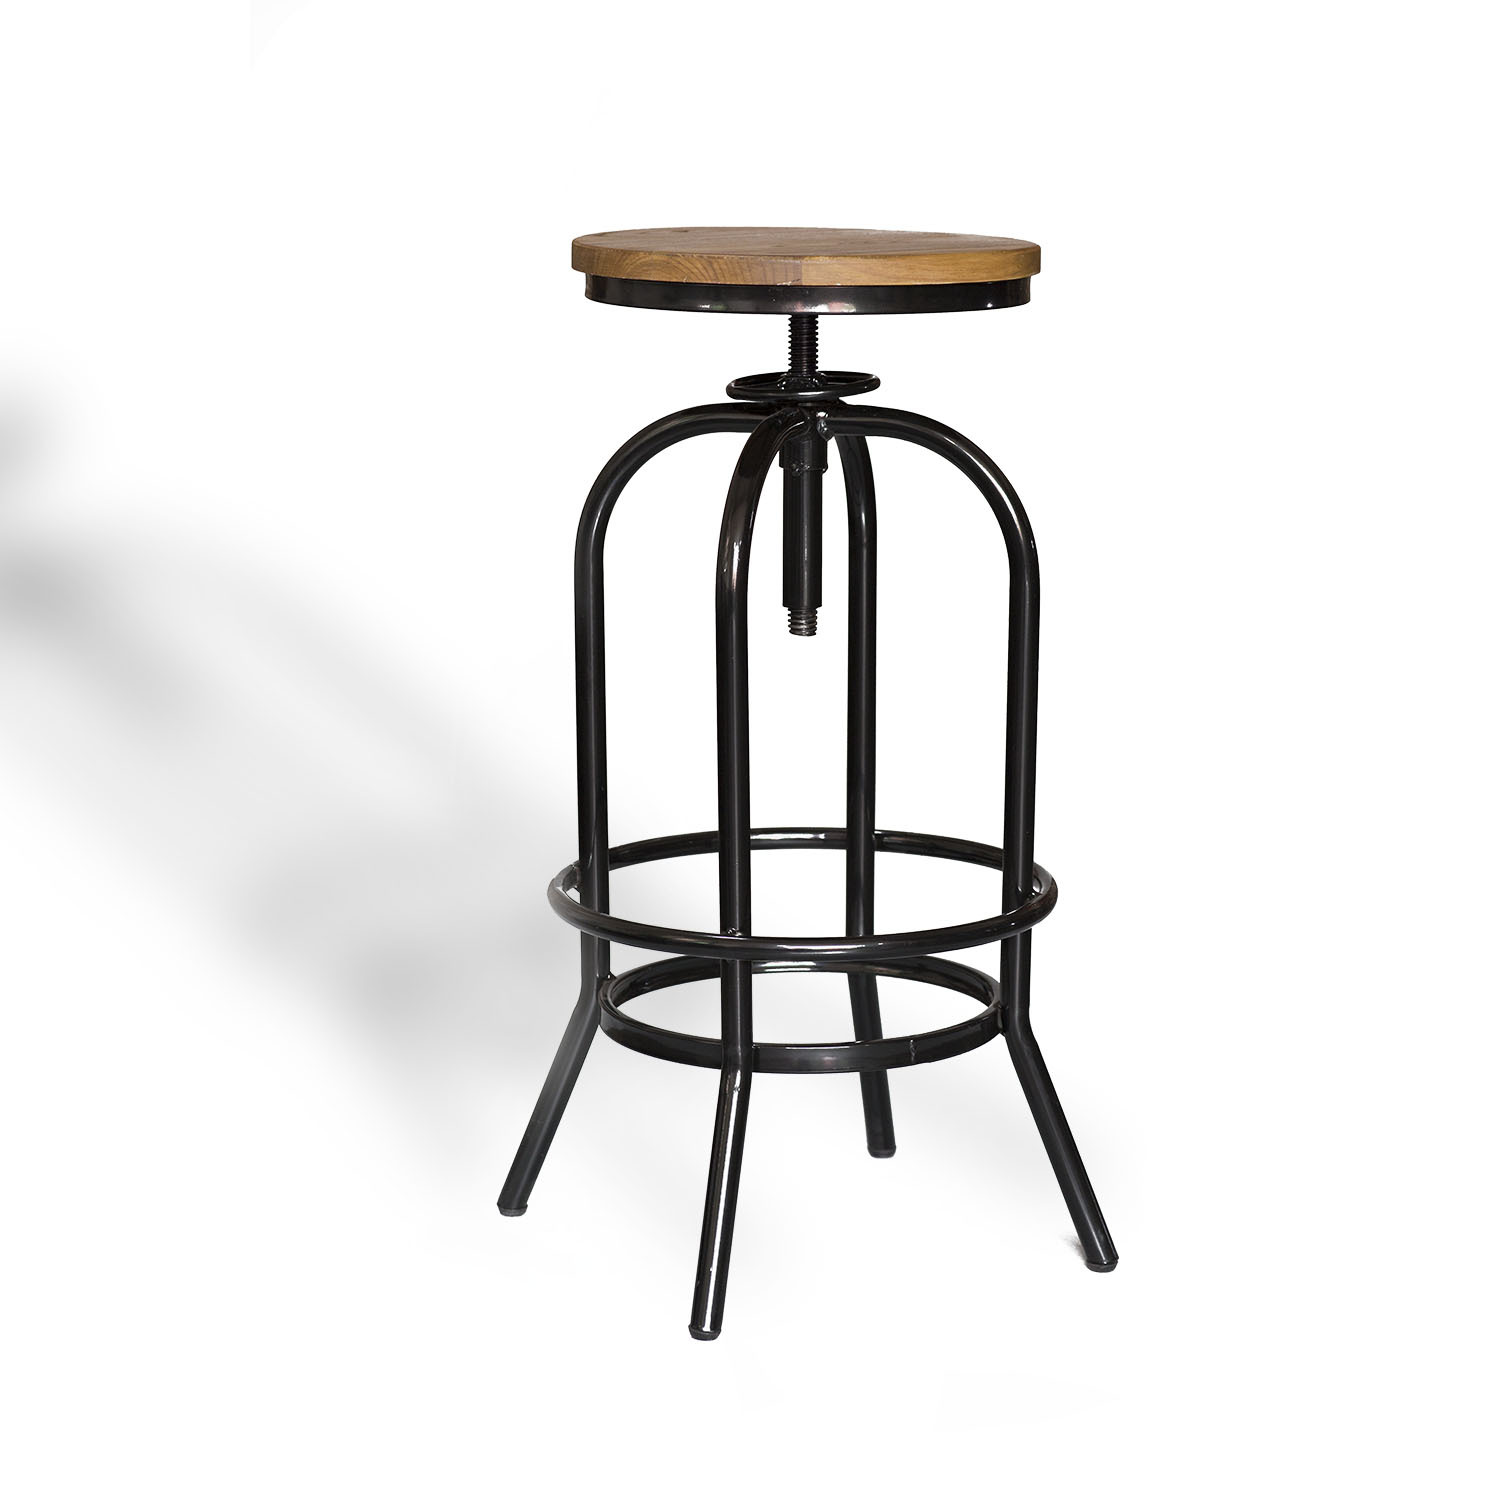 Black Kitchen Bar Stools Uk: 2x Metal Bar Stool ARI Kitchen Chair Swivel Adjustable